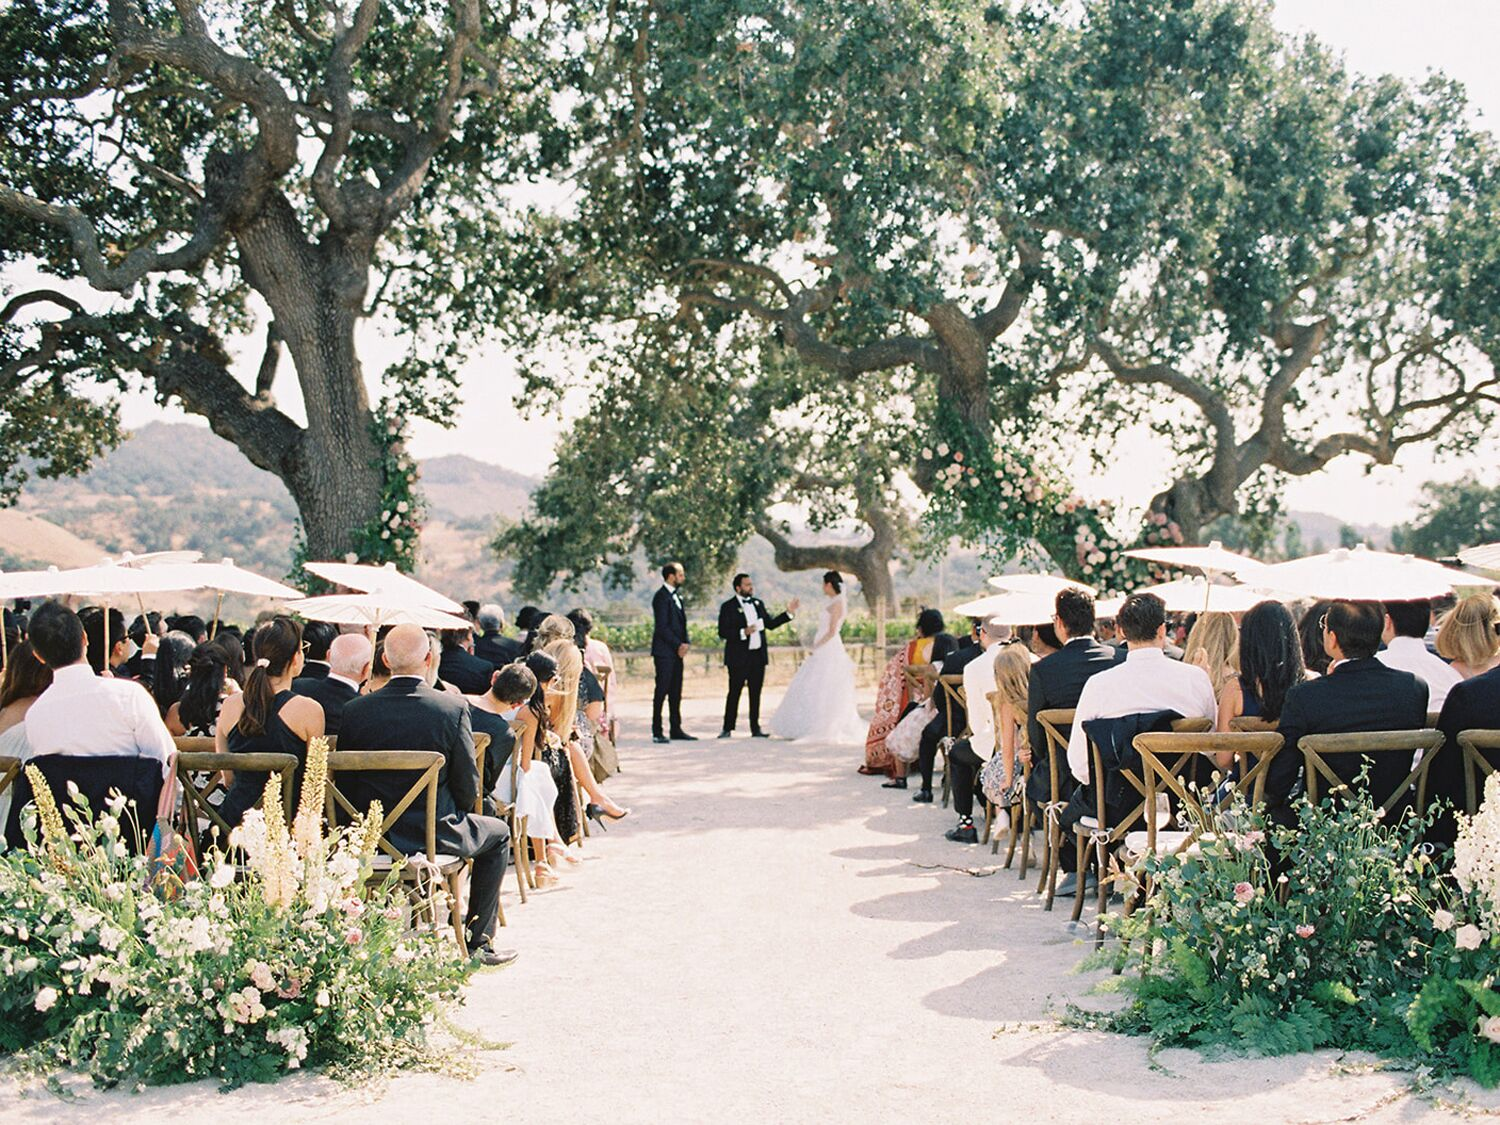 How to Plan a Vineyard Wedding, From Top to Bottom